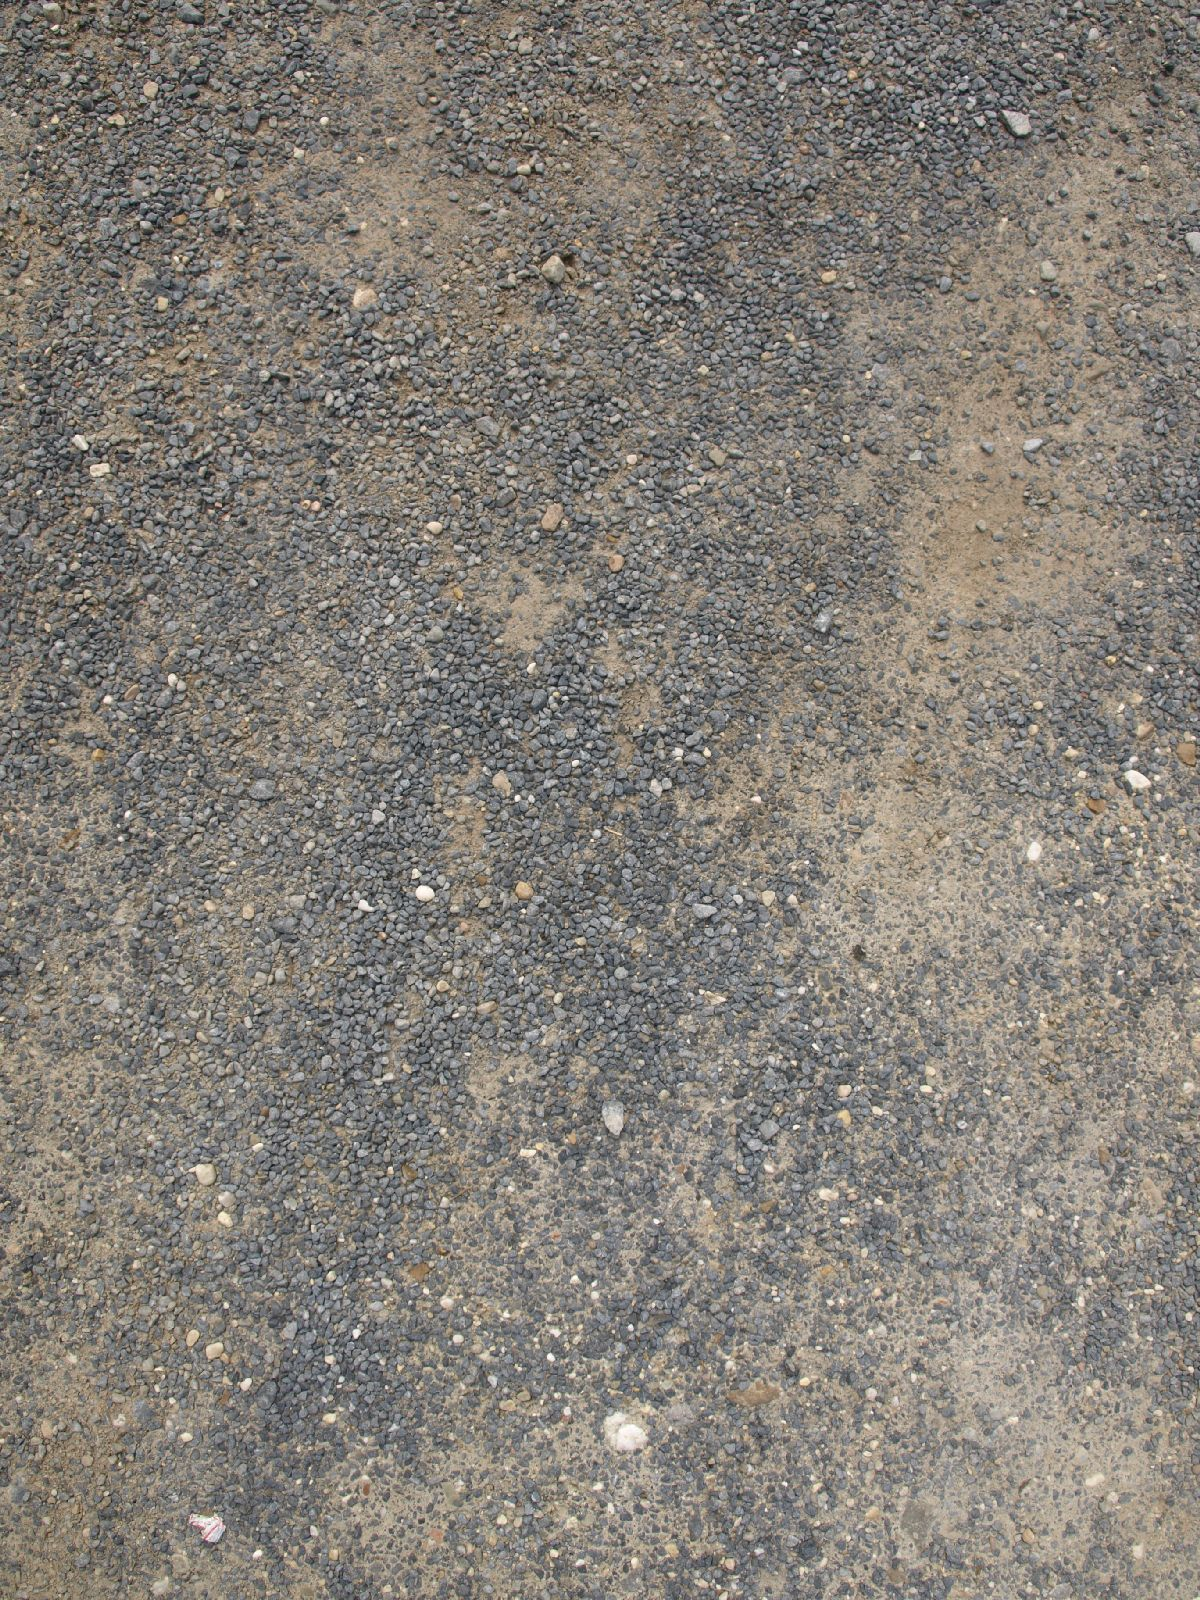 Ground-Nature_Texture_A_P4261849